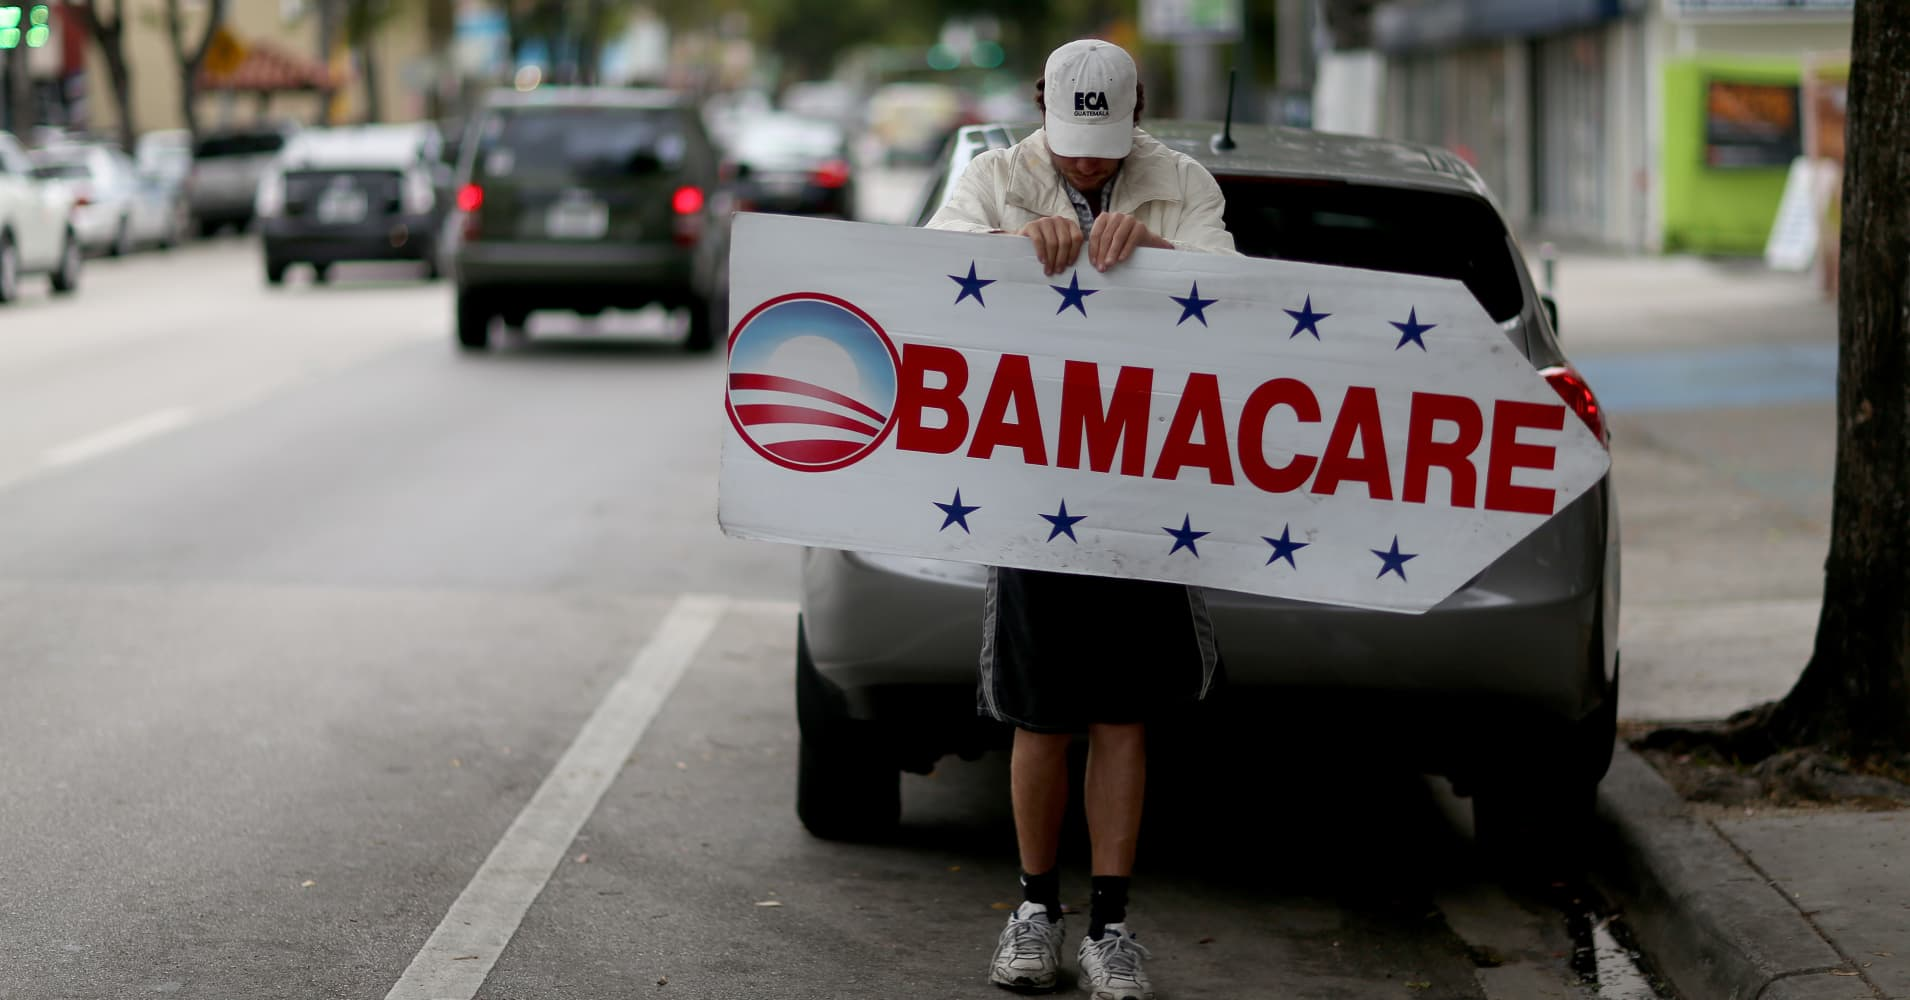 Trump's Obamacare ad cuts will slash health enrollment by at least 1.1 million, analysis says